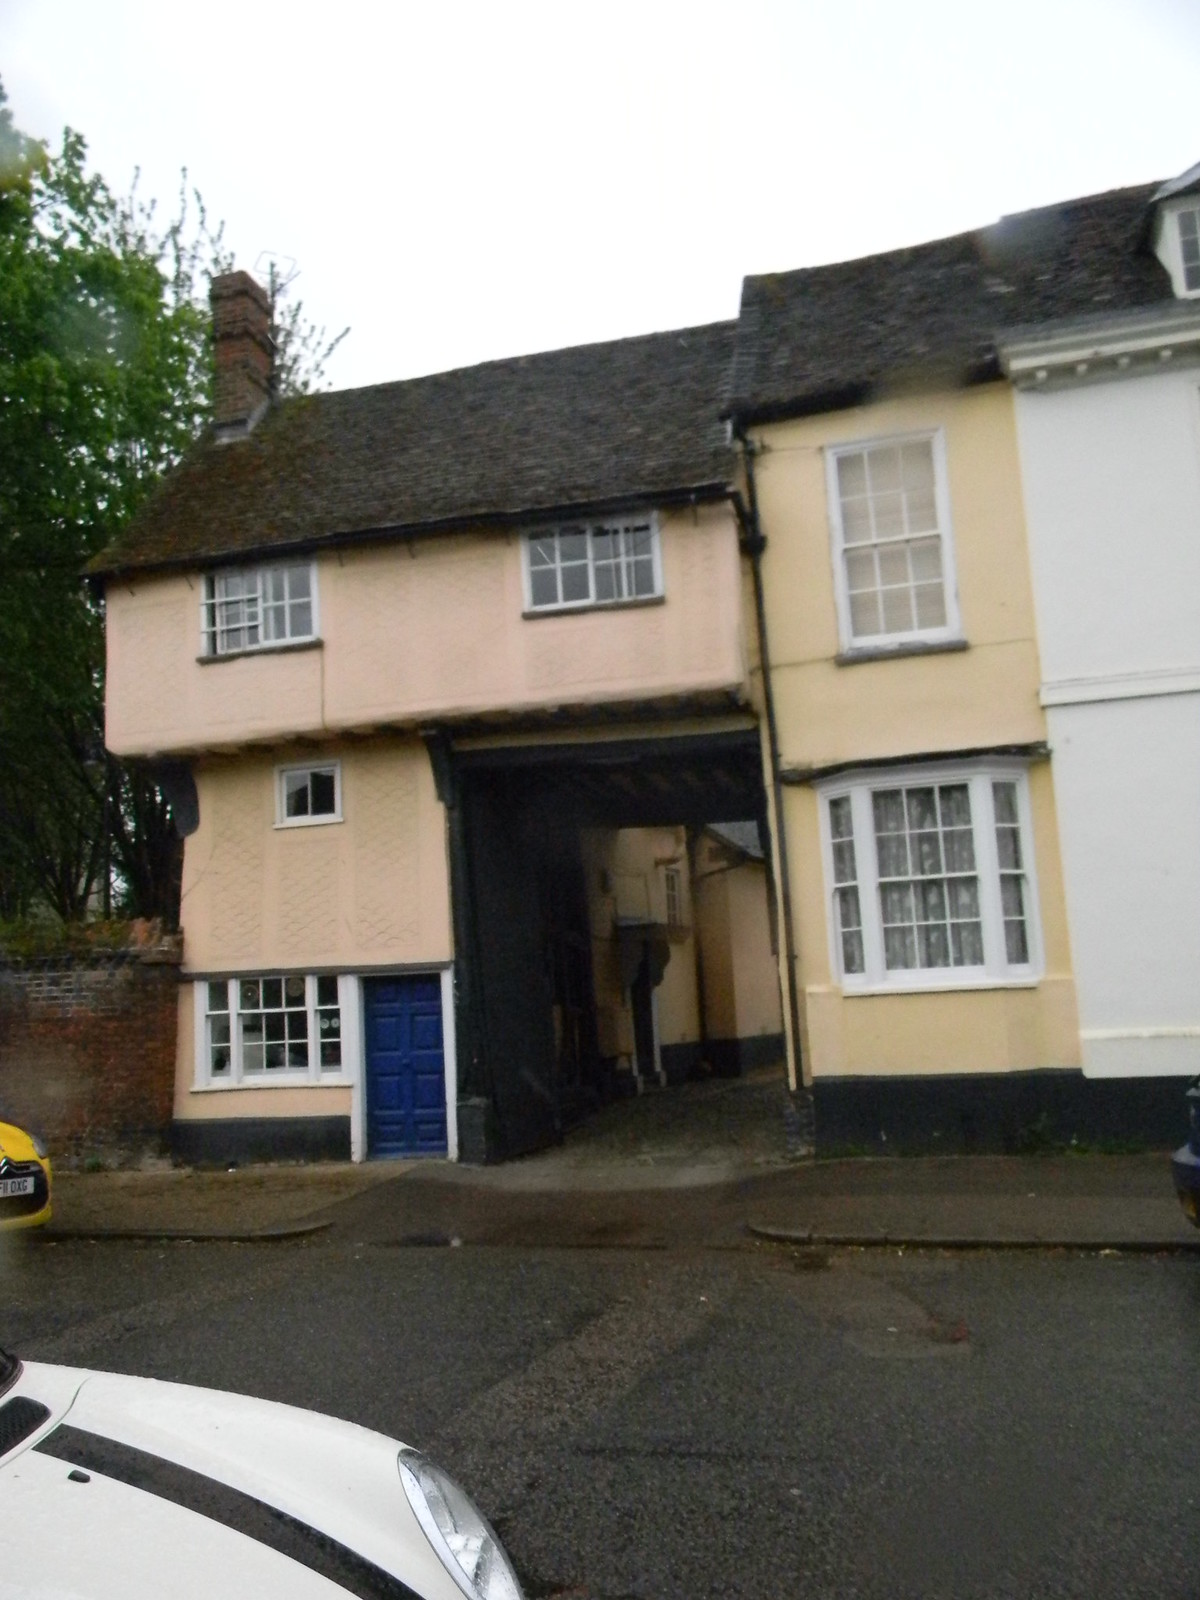 Interesting old house Baldock Baldock Circular